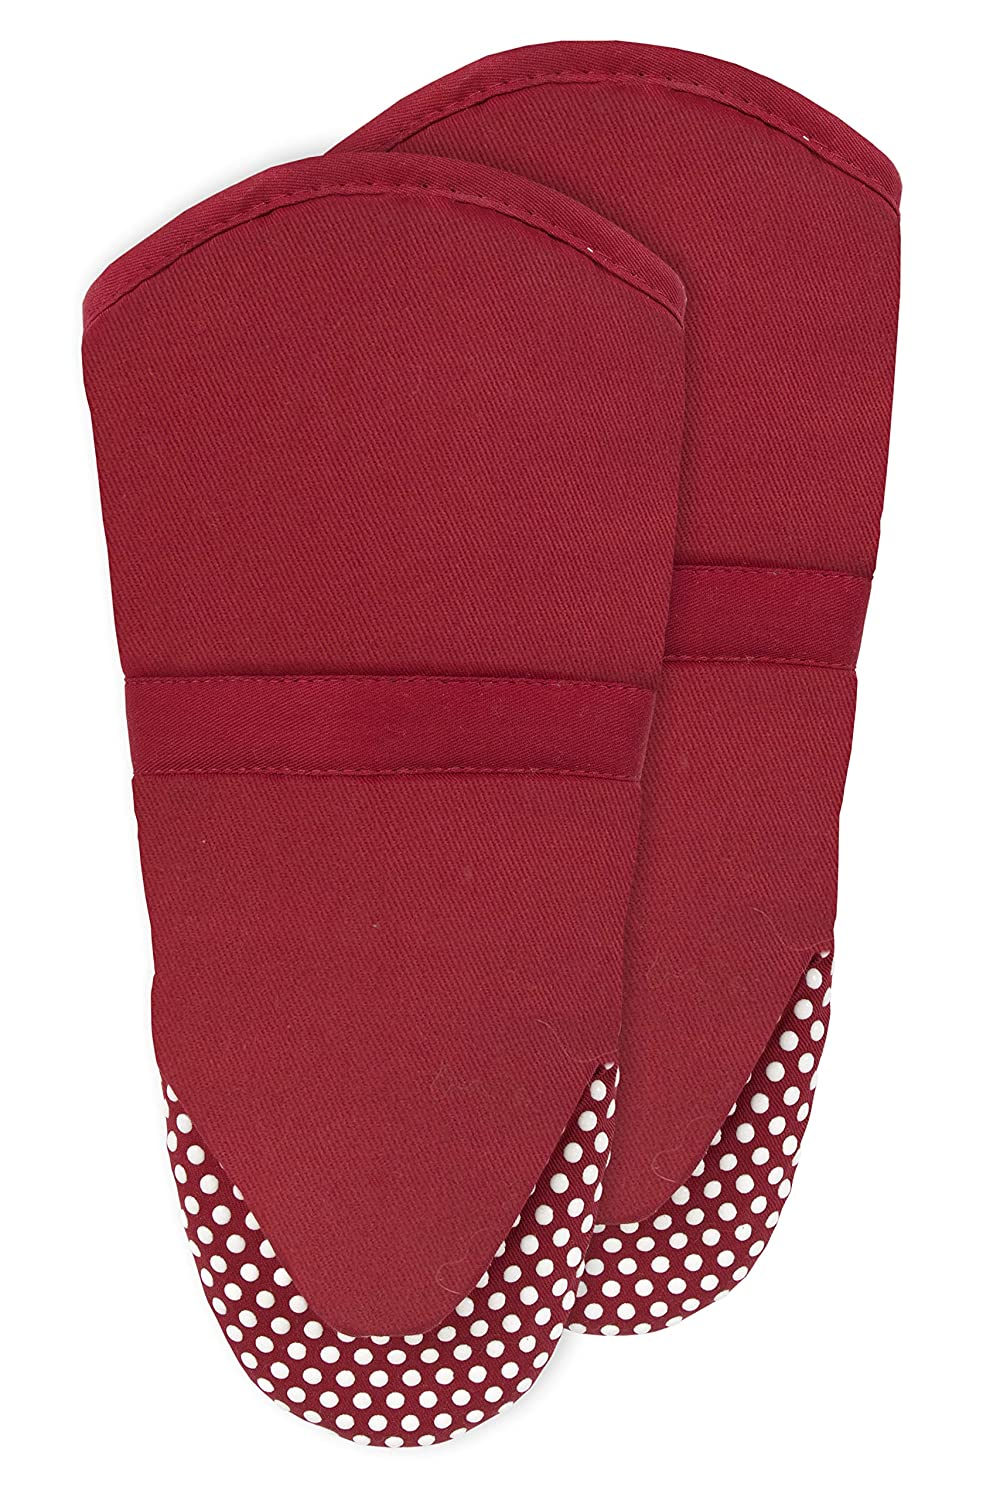 RITZ Royale 051283 Silicone Oven Mitt, 2-Pack, Paprika